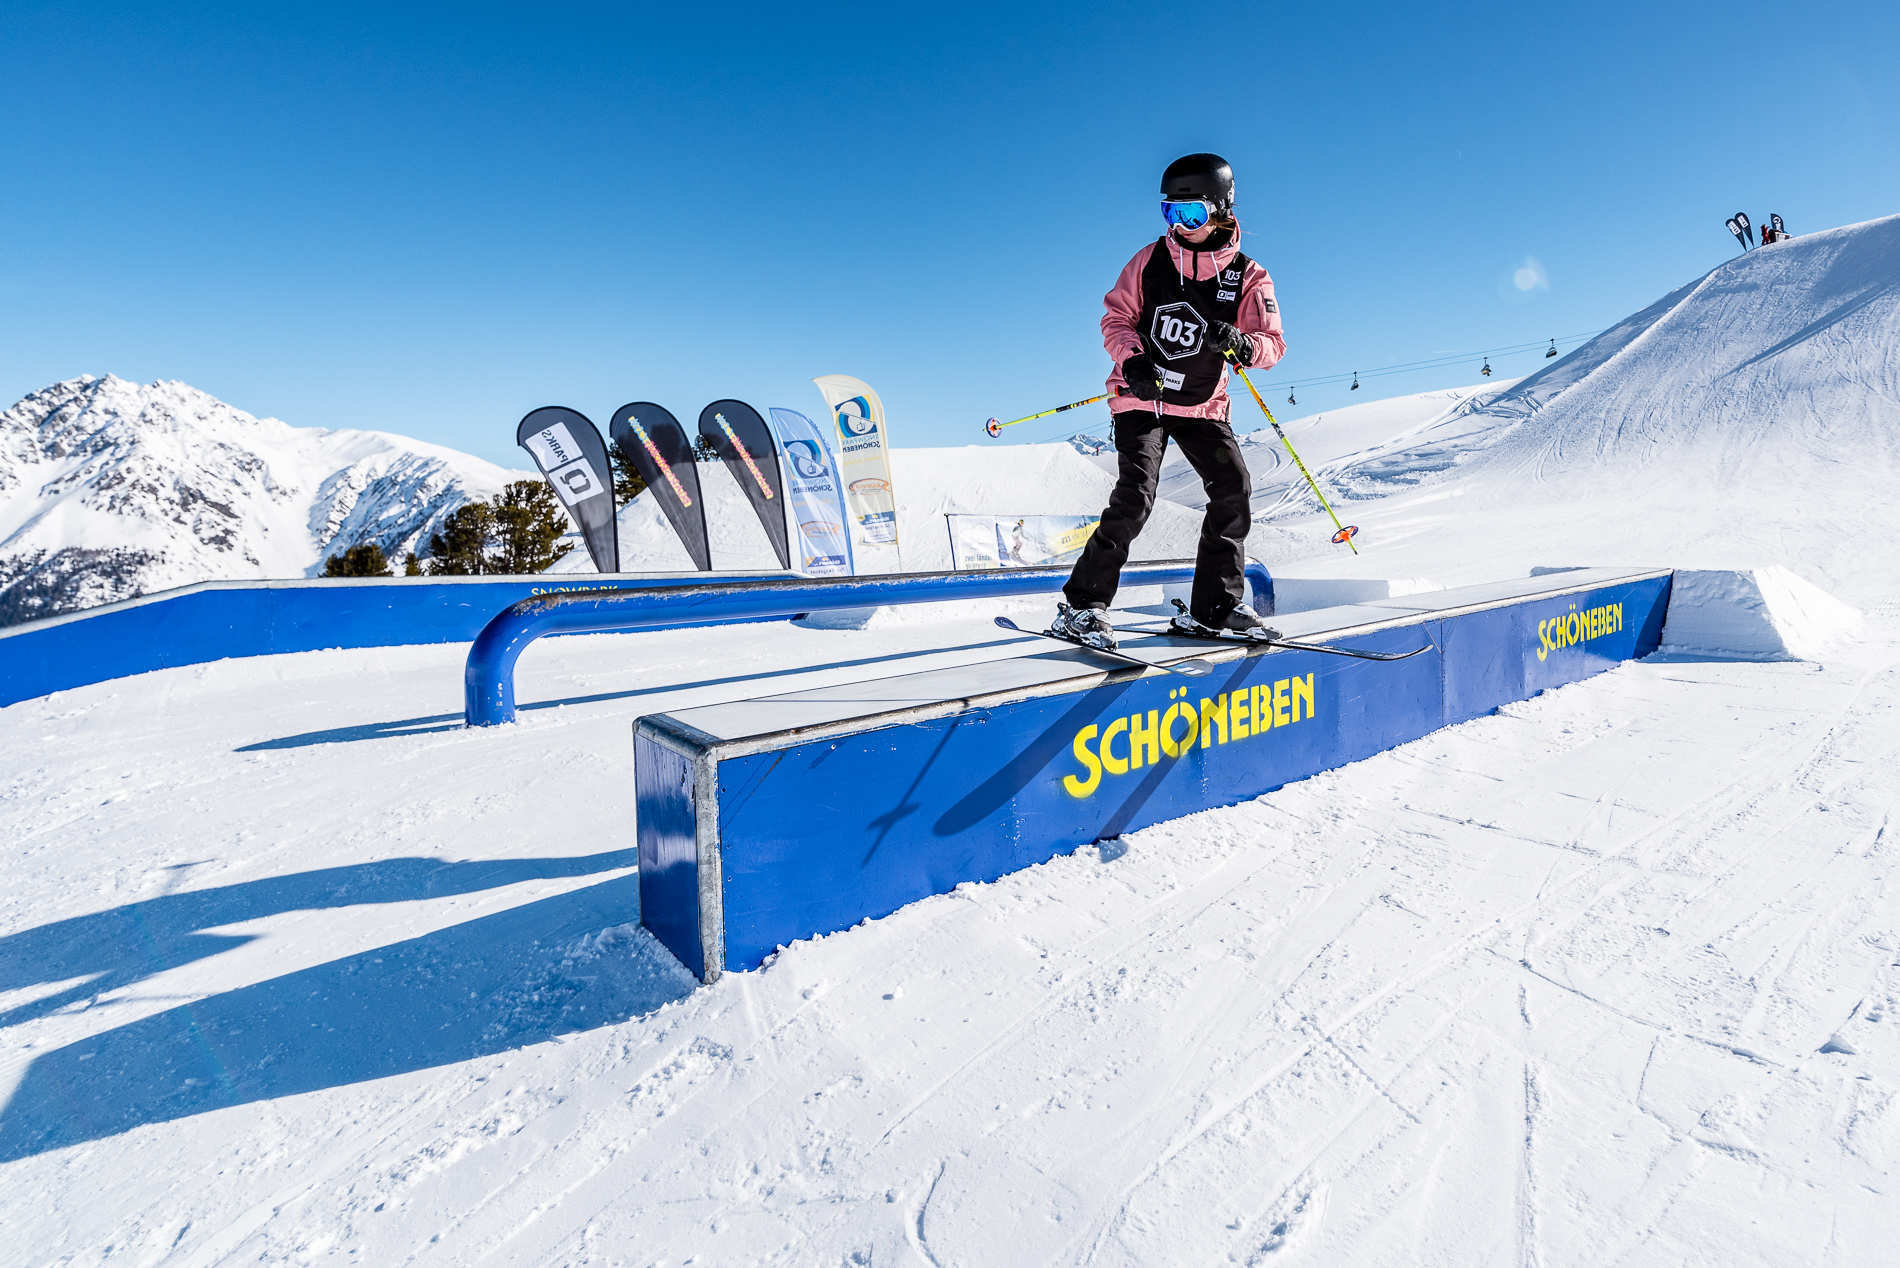 schoeneben 09 02 2019 action fs christian riefenberg qparks 2 2